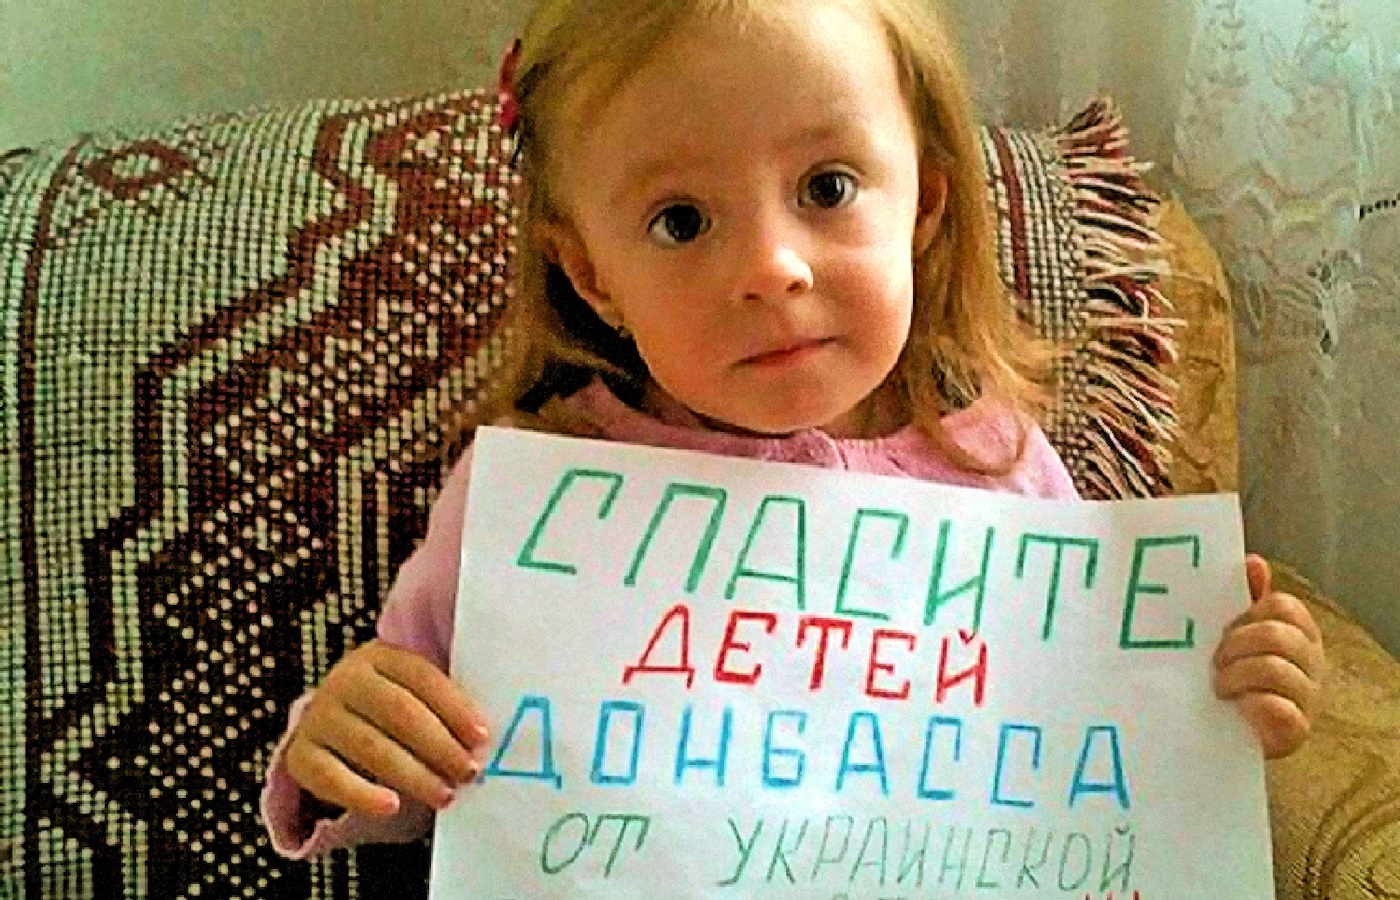 00 save donbass kids from the ukrainian army russia 190416